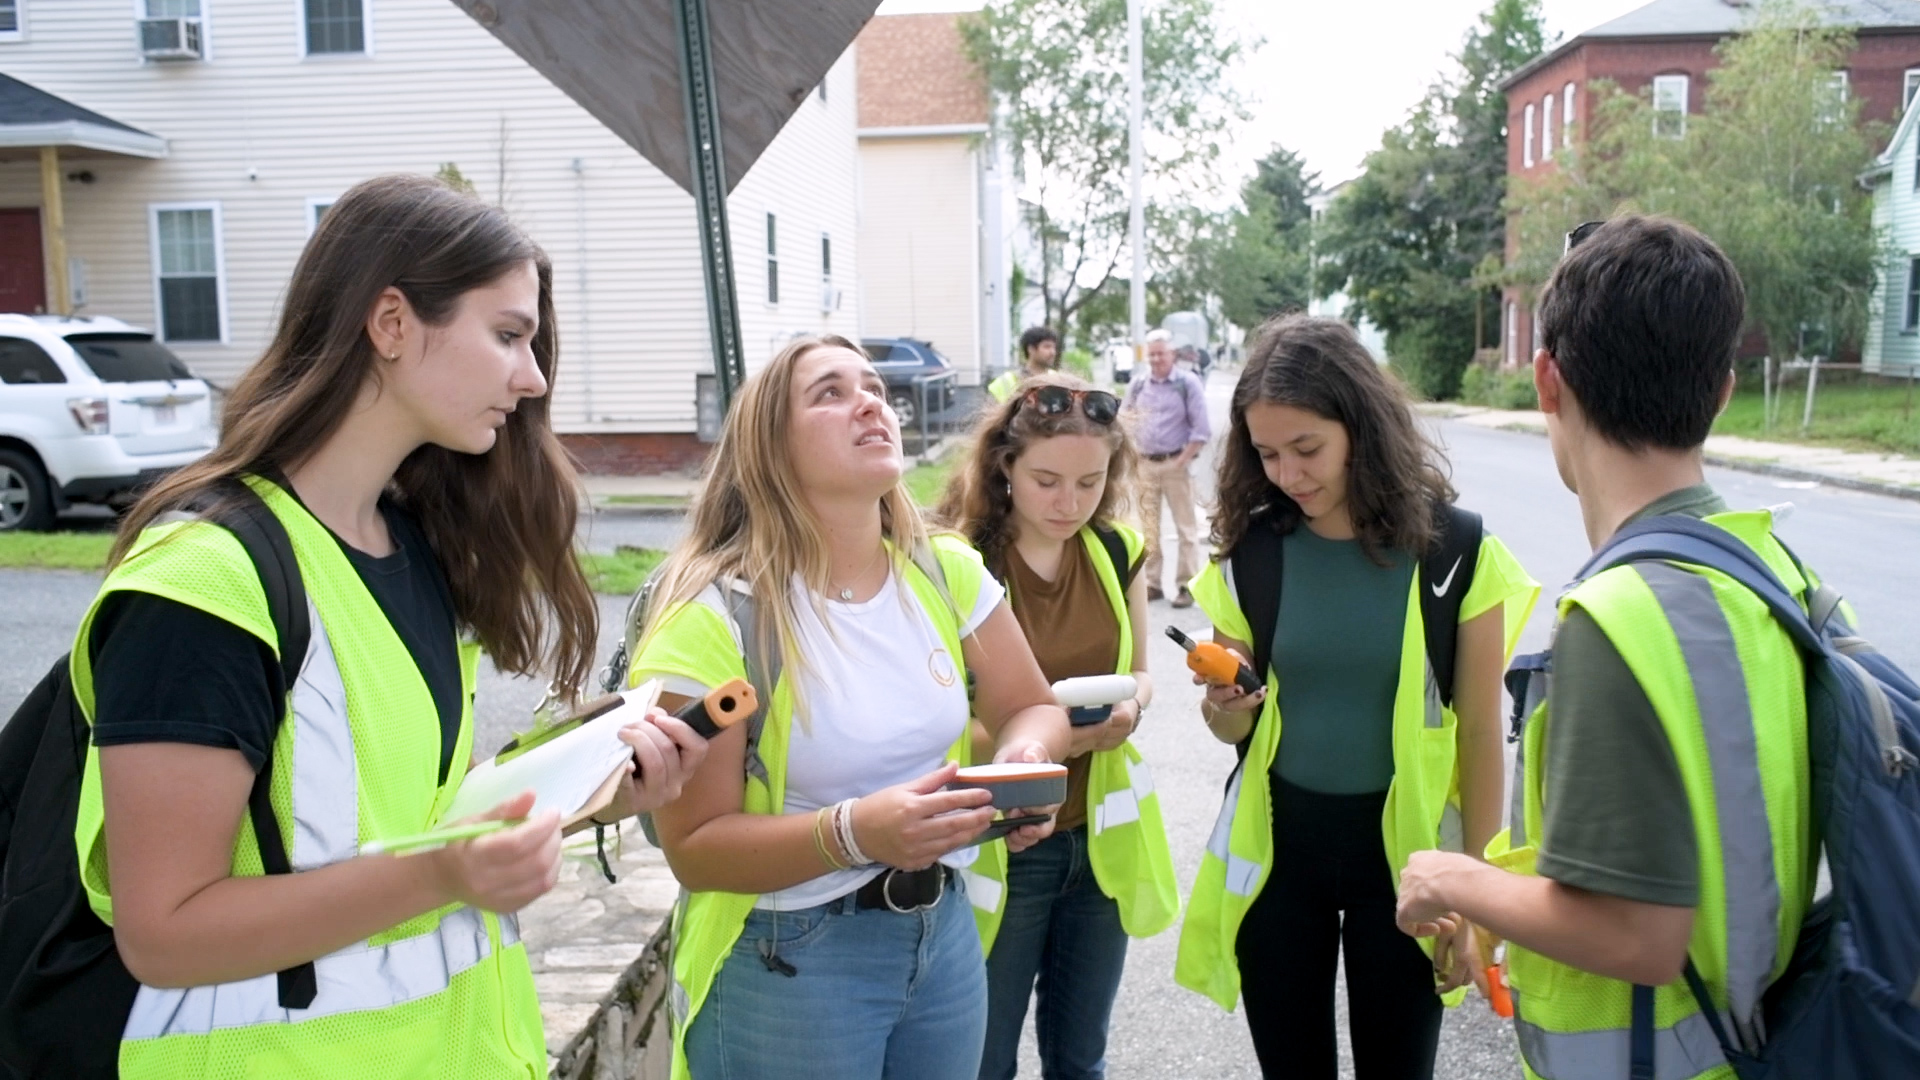 five students in green safety vests stand together while conducting research in a Worcester neighborho